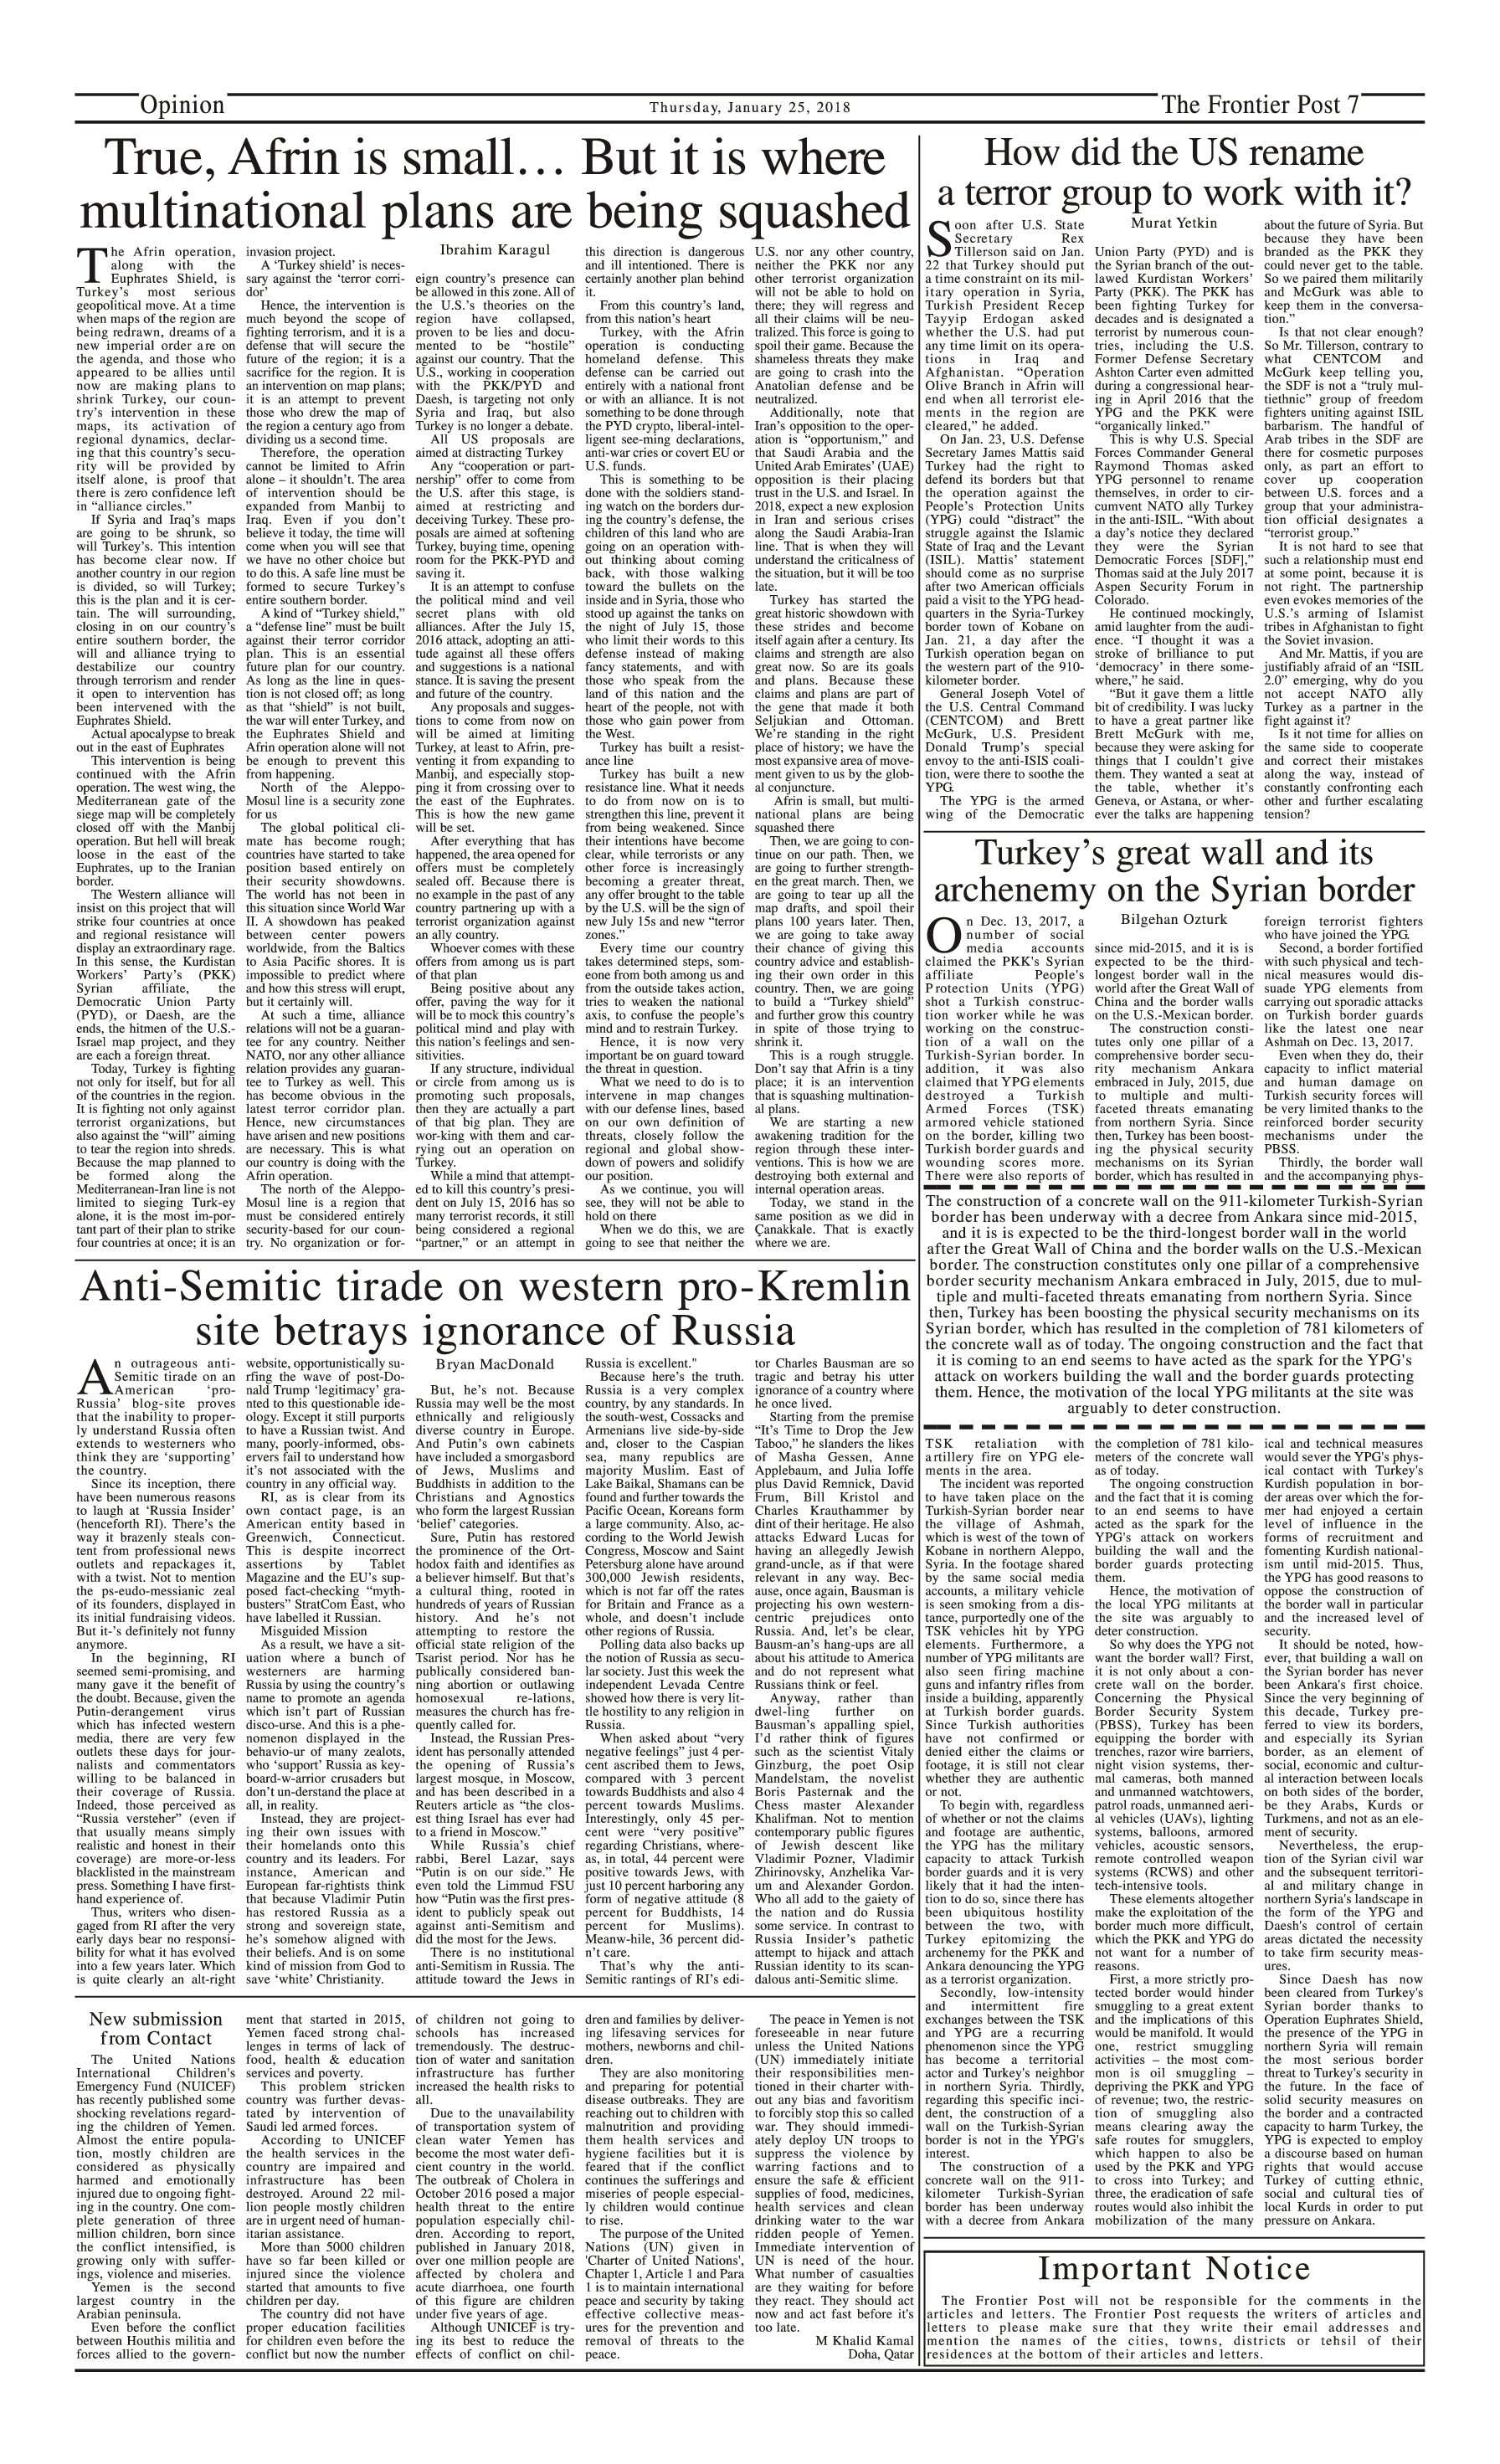 Opinion Page 25-1